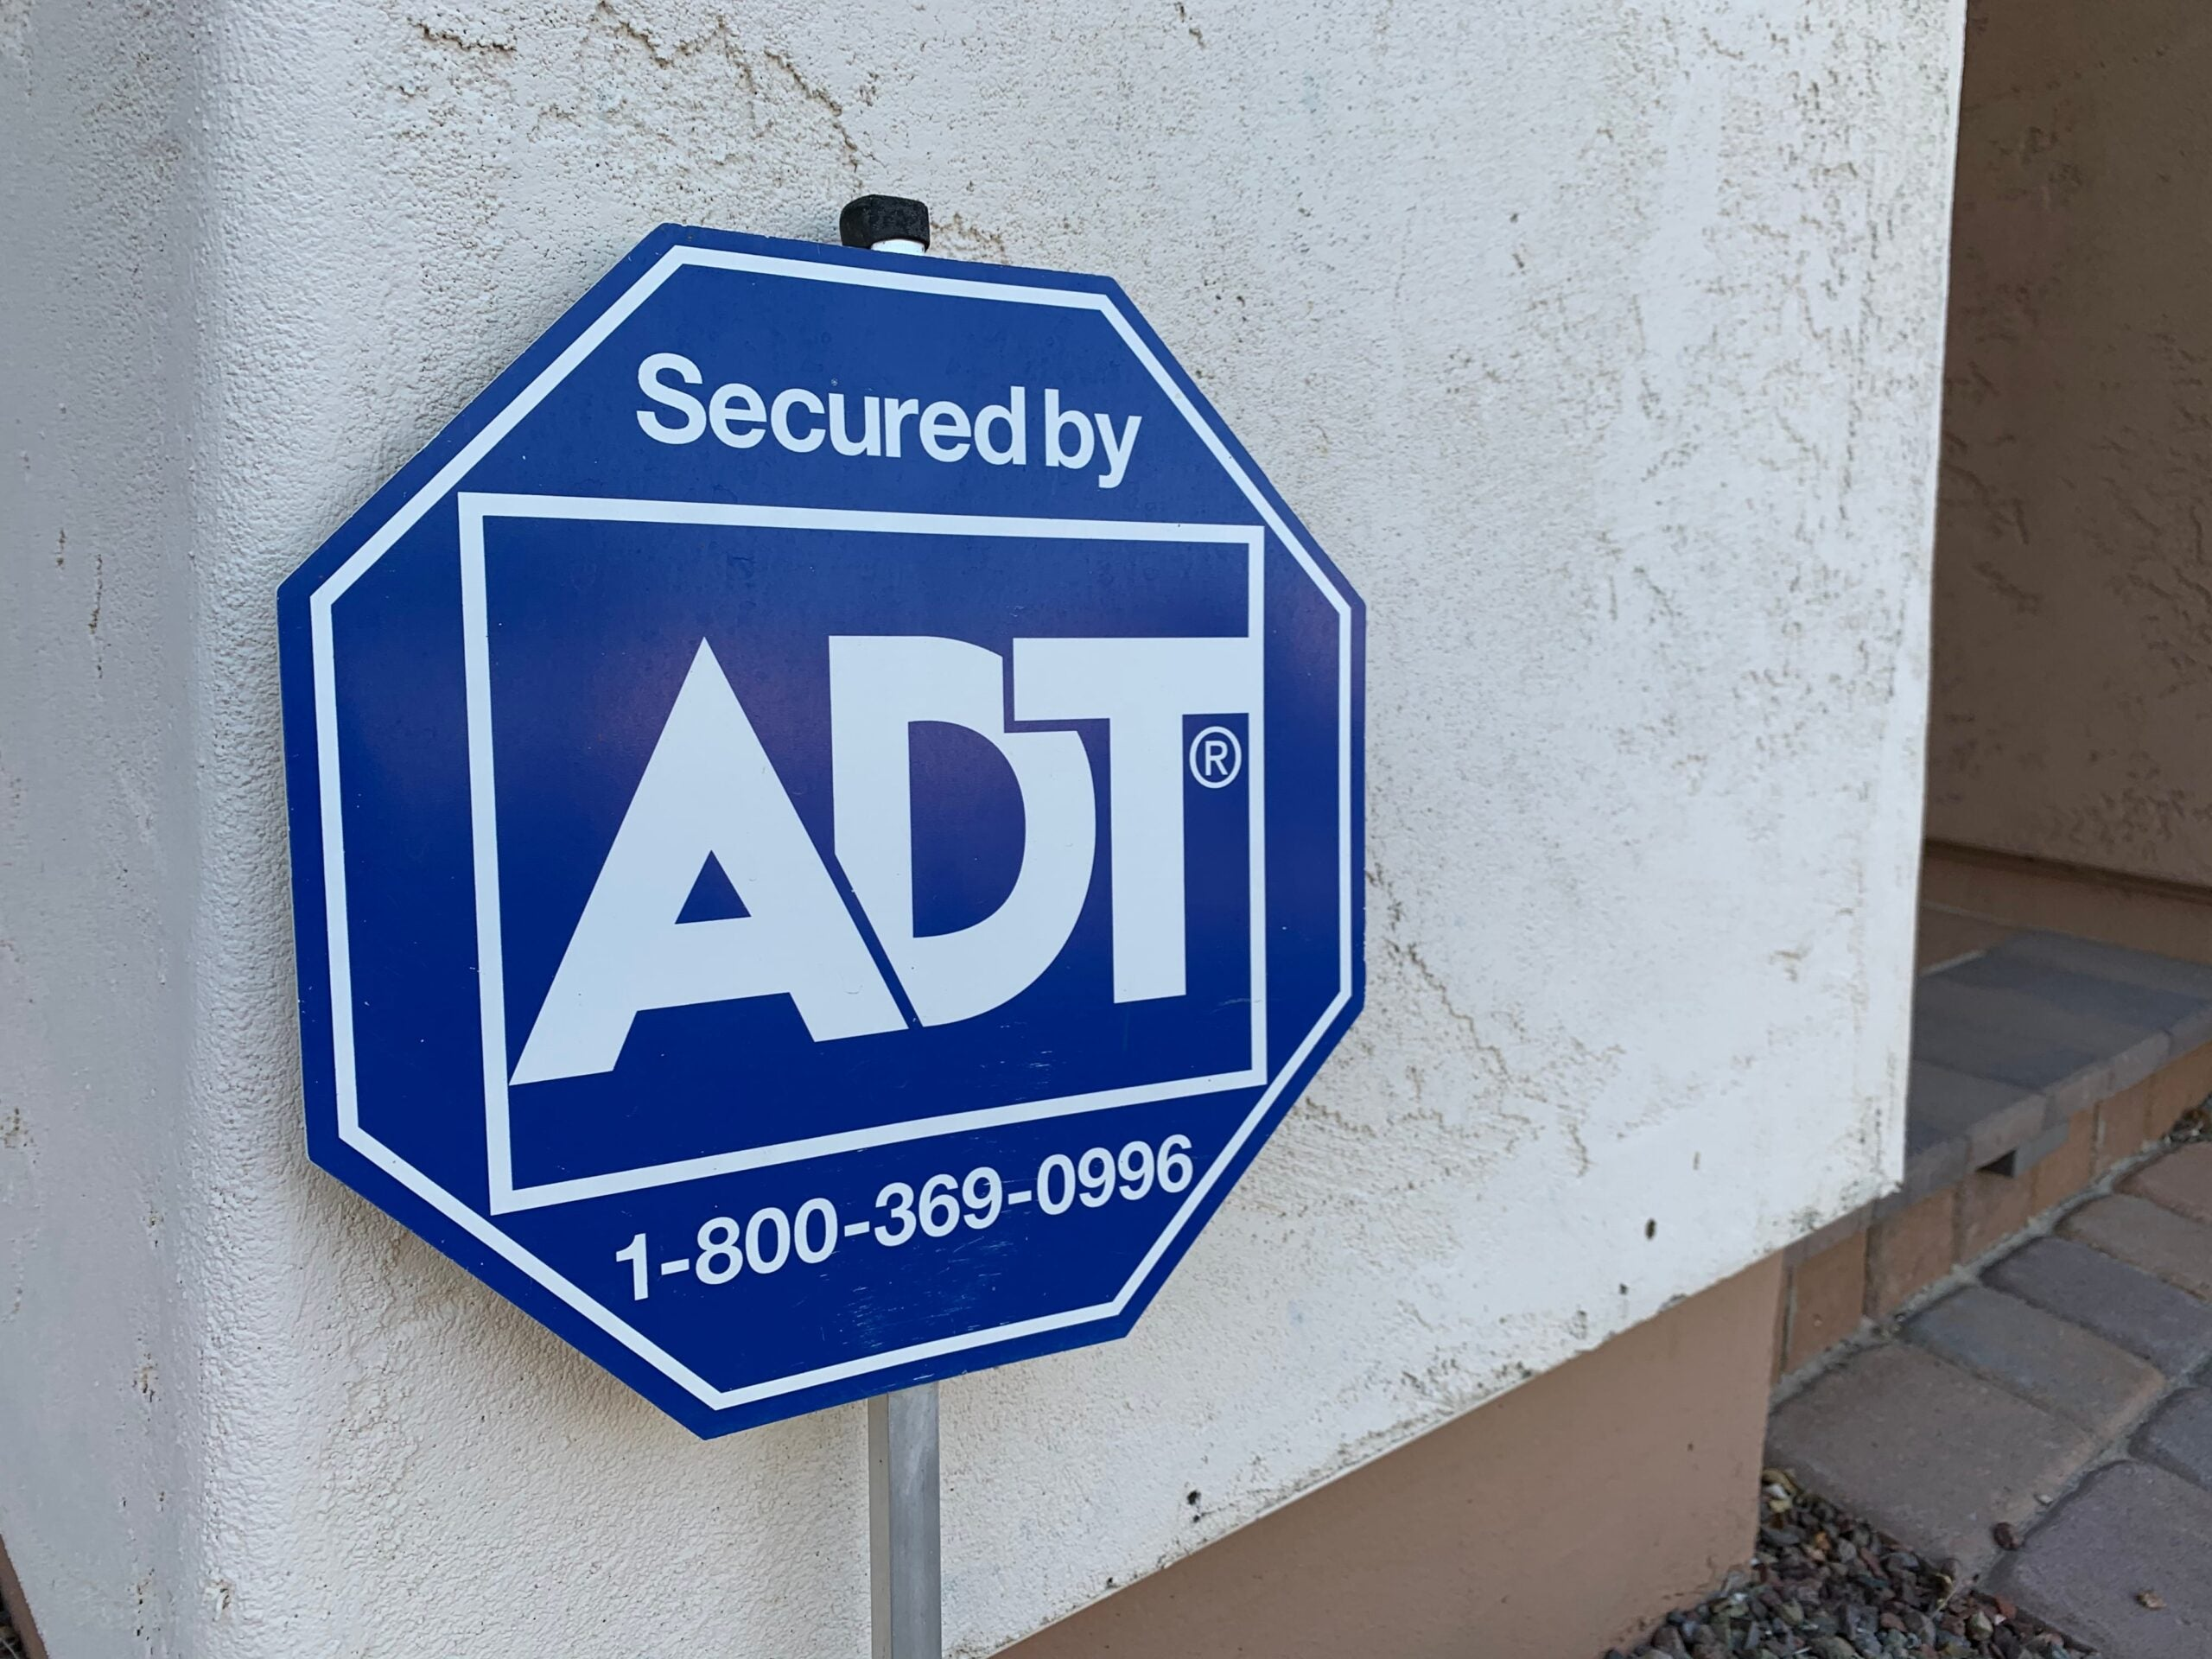 Former ADT Employee Caught Spying on Customers, Pleads Guilty